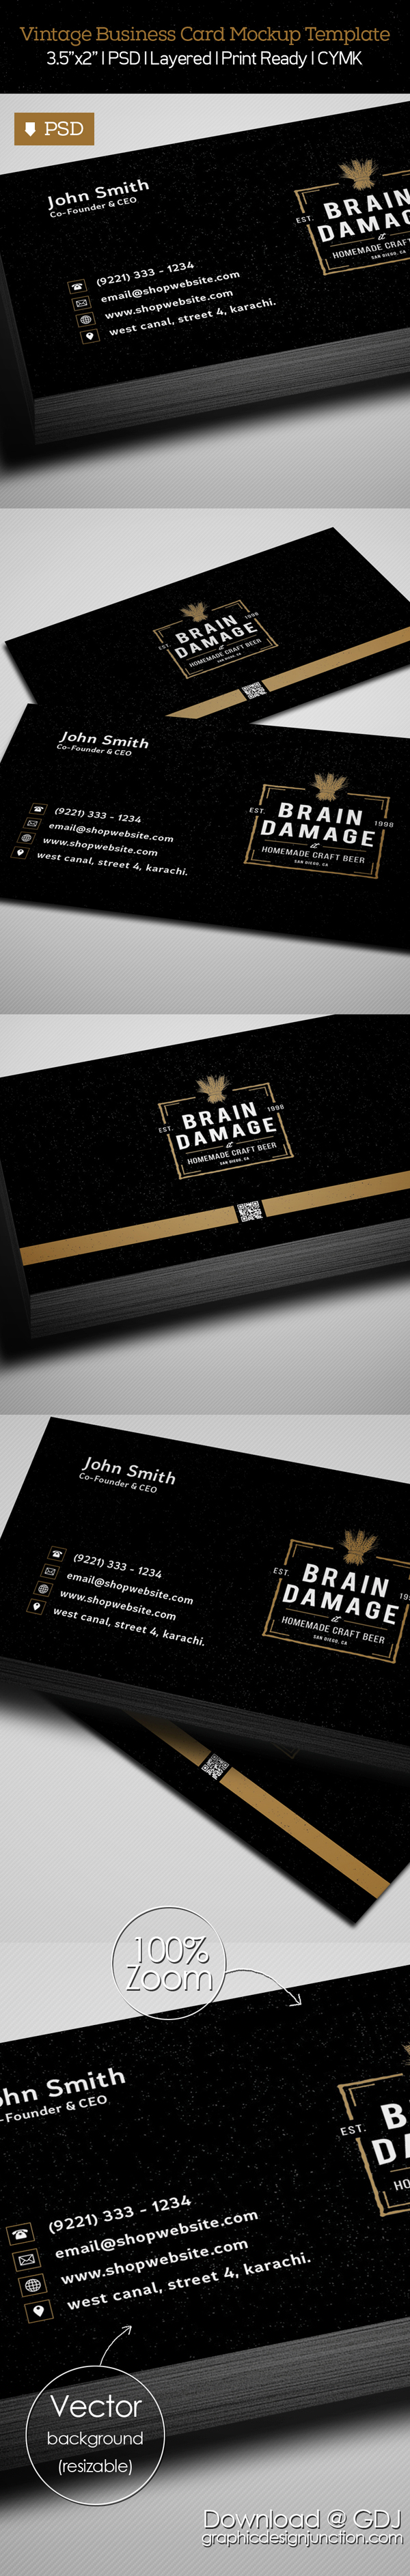 template business card psd 28 images 25 best free business